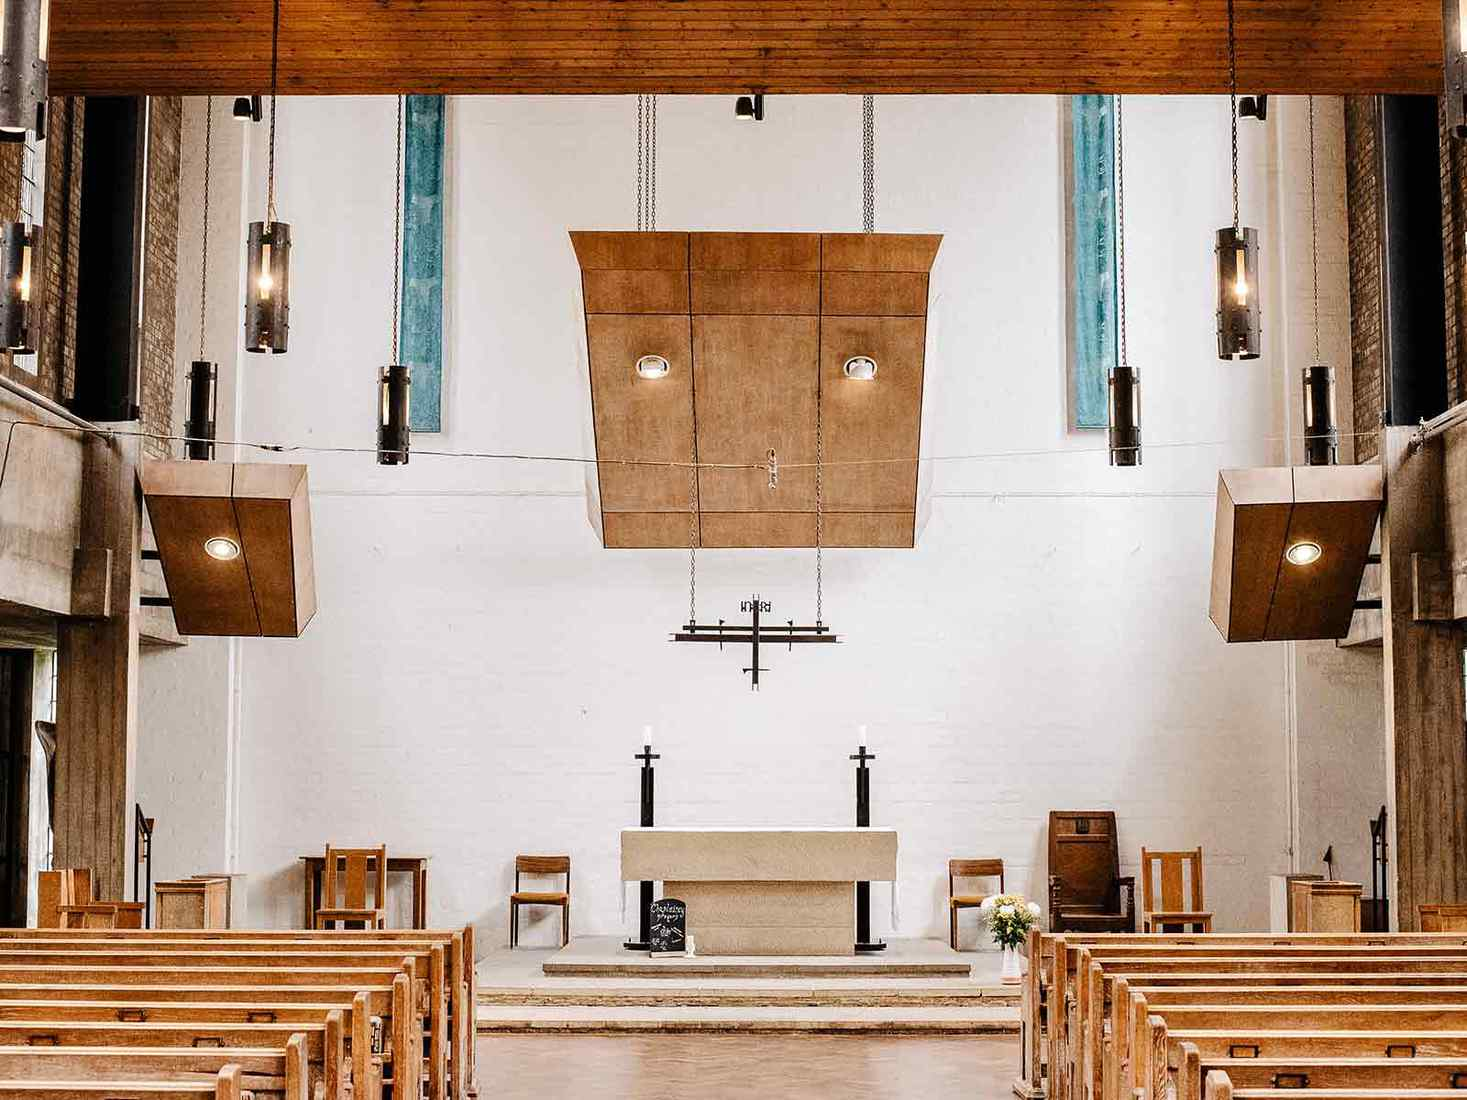 Inside Chapel, looking down aisle towards altar with wooden benches on both sides